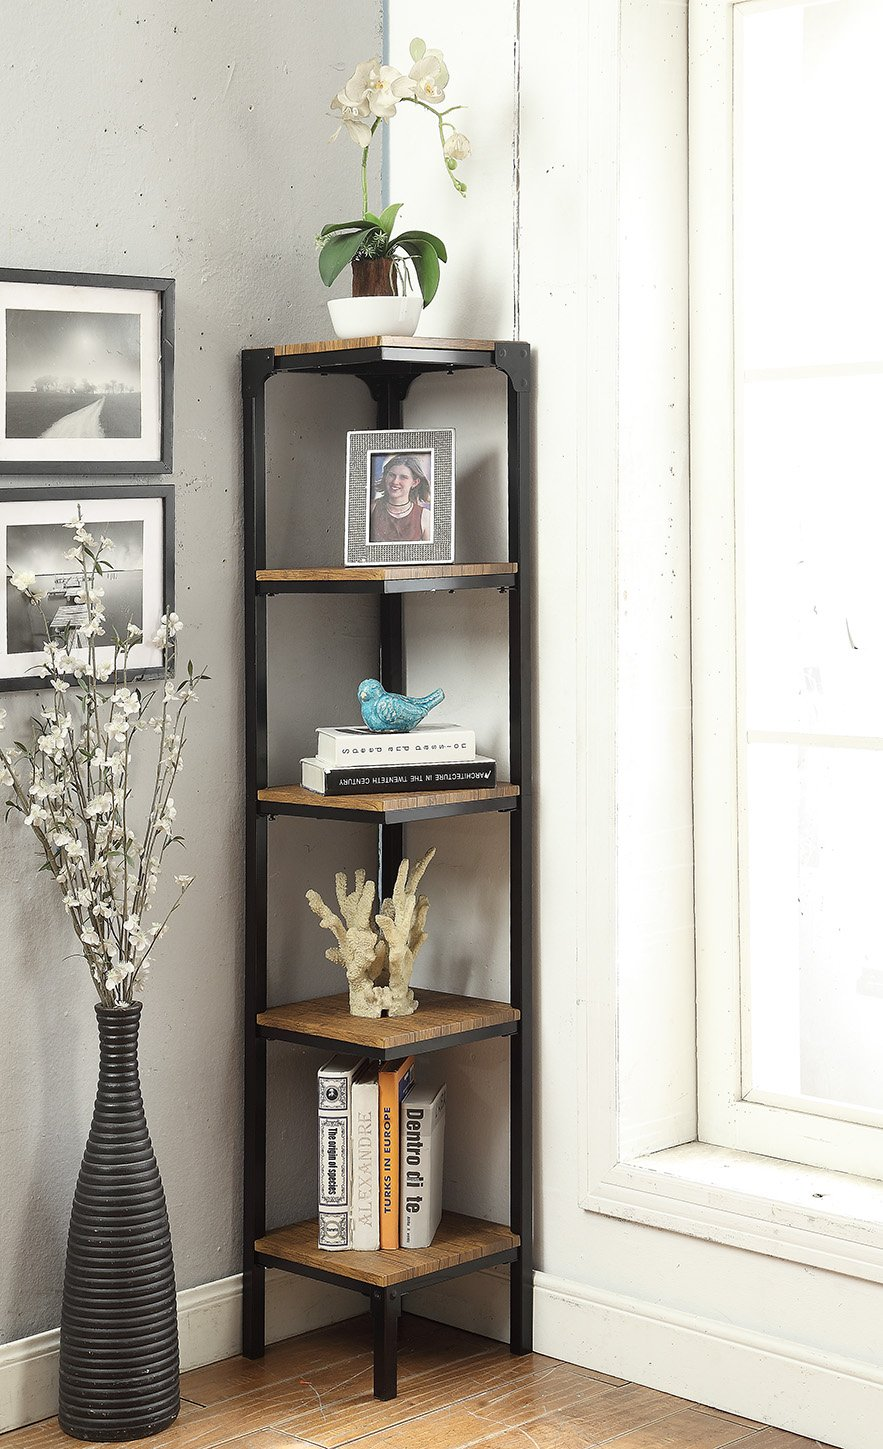 Vintage Brown Finish Black Metal Wall Corner 5-Tier Bookshelf Bookcase Accent Display Shelf by eHomeProducts